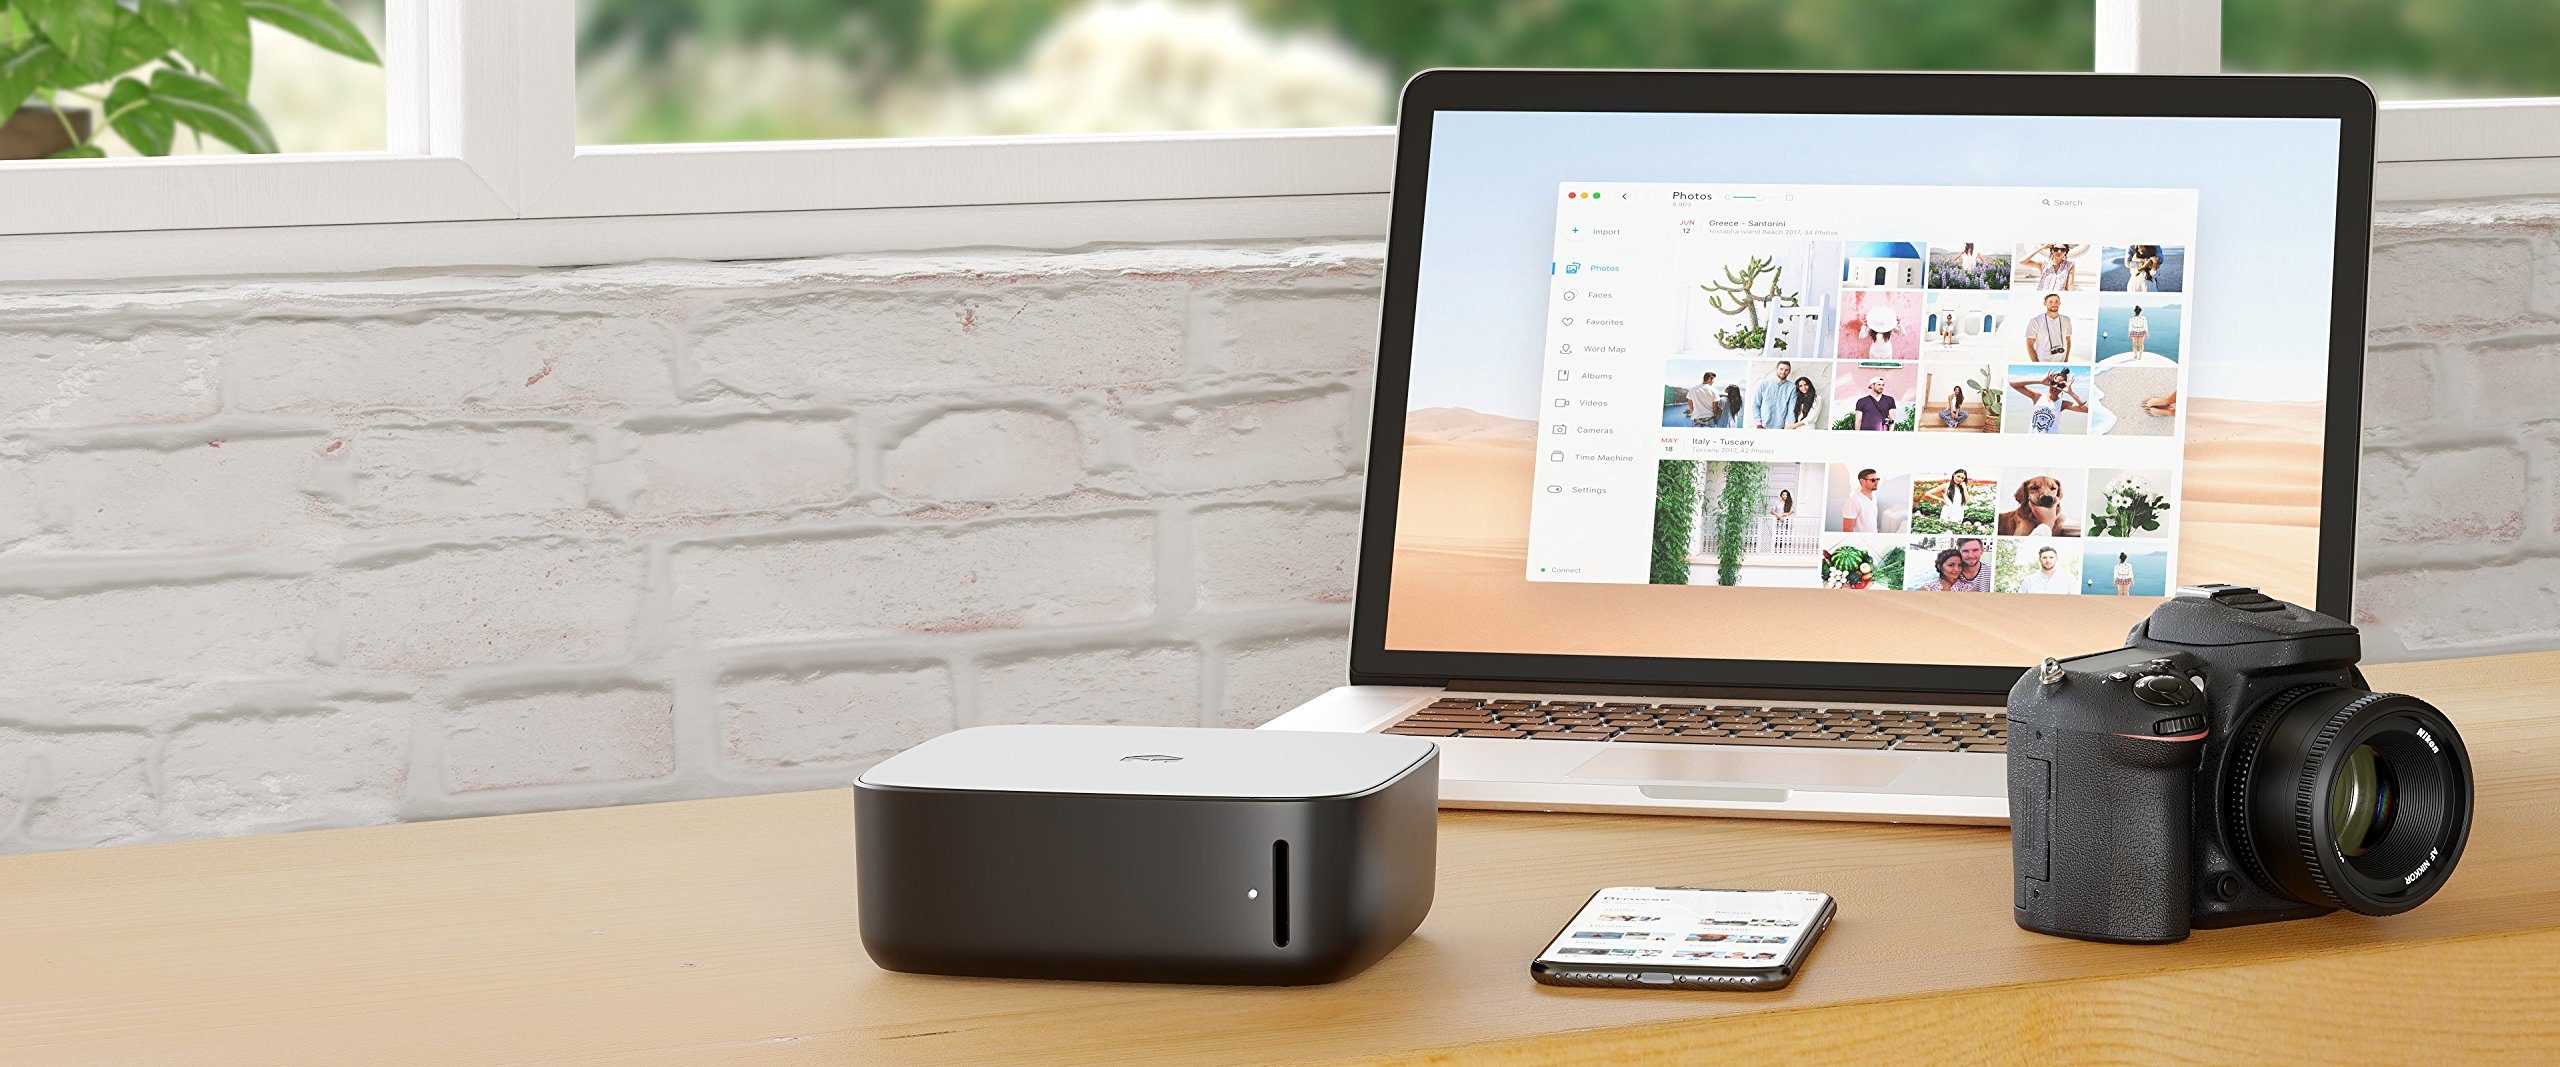 Monument Photo Management Device - Automatically Back up and Organize All of Your Photos & Videos. No Monthly fees. 7 Organizes your photos with Artificial Intelligence (5 users / Unlimited Devices) Backs up photos over Wi-Fi or Gigabit Ethernet in seconds Creates automated backups